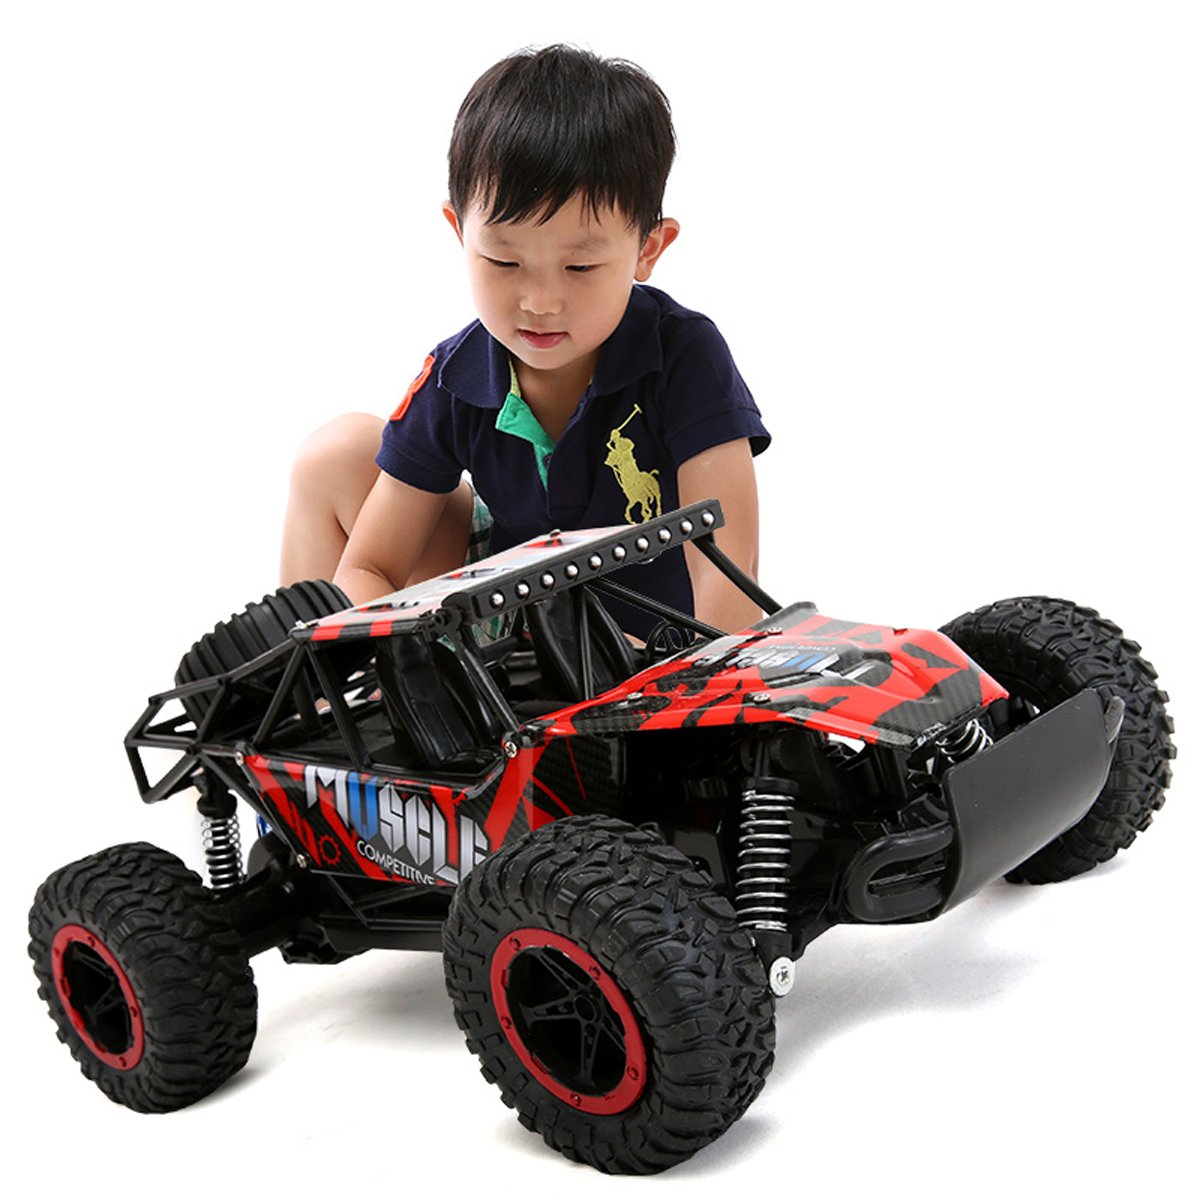 Hugine 1:16 20Km/h High Speed RC Car Off Road Vehicle 2.4G Racing Cars Monster Truck Dune Buggy Independent Suspension Radio Control Cars For Kids Adults Hobby Toys (Red)